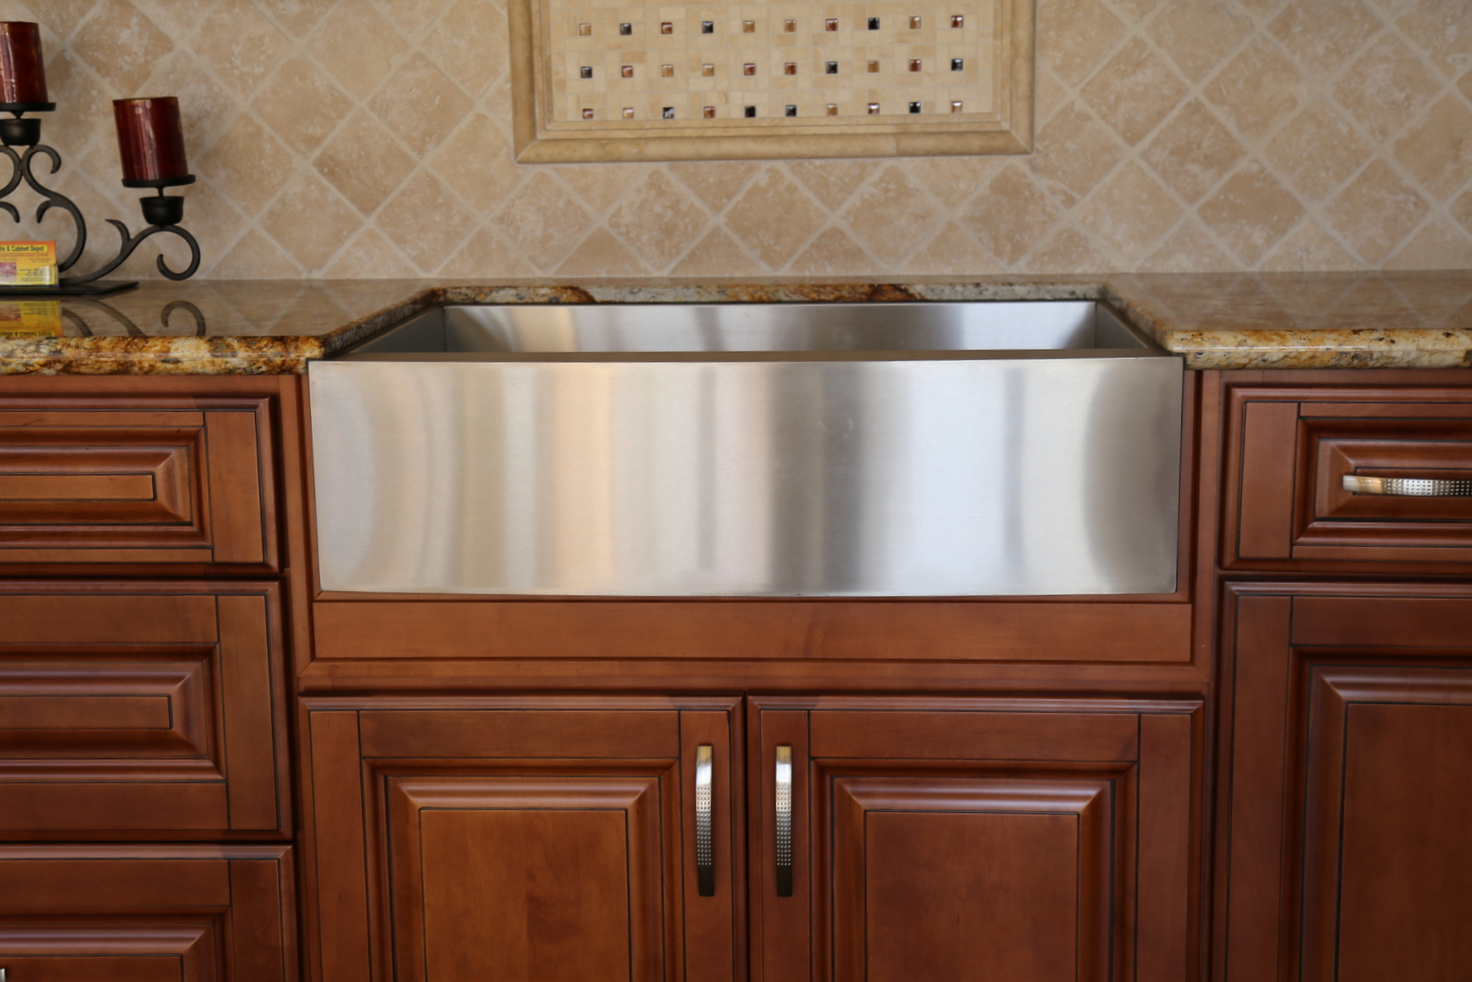 Farmhouse sinks add a unique look to your kitchen area and available in stainless steel, white, and bronze.